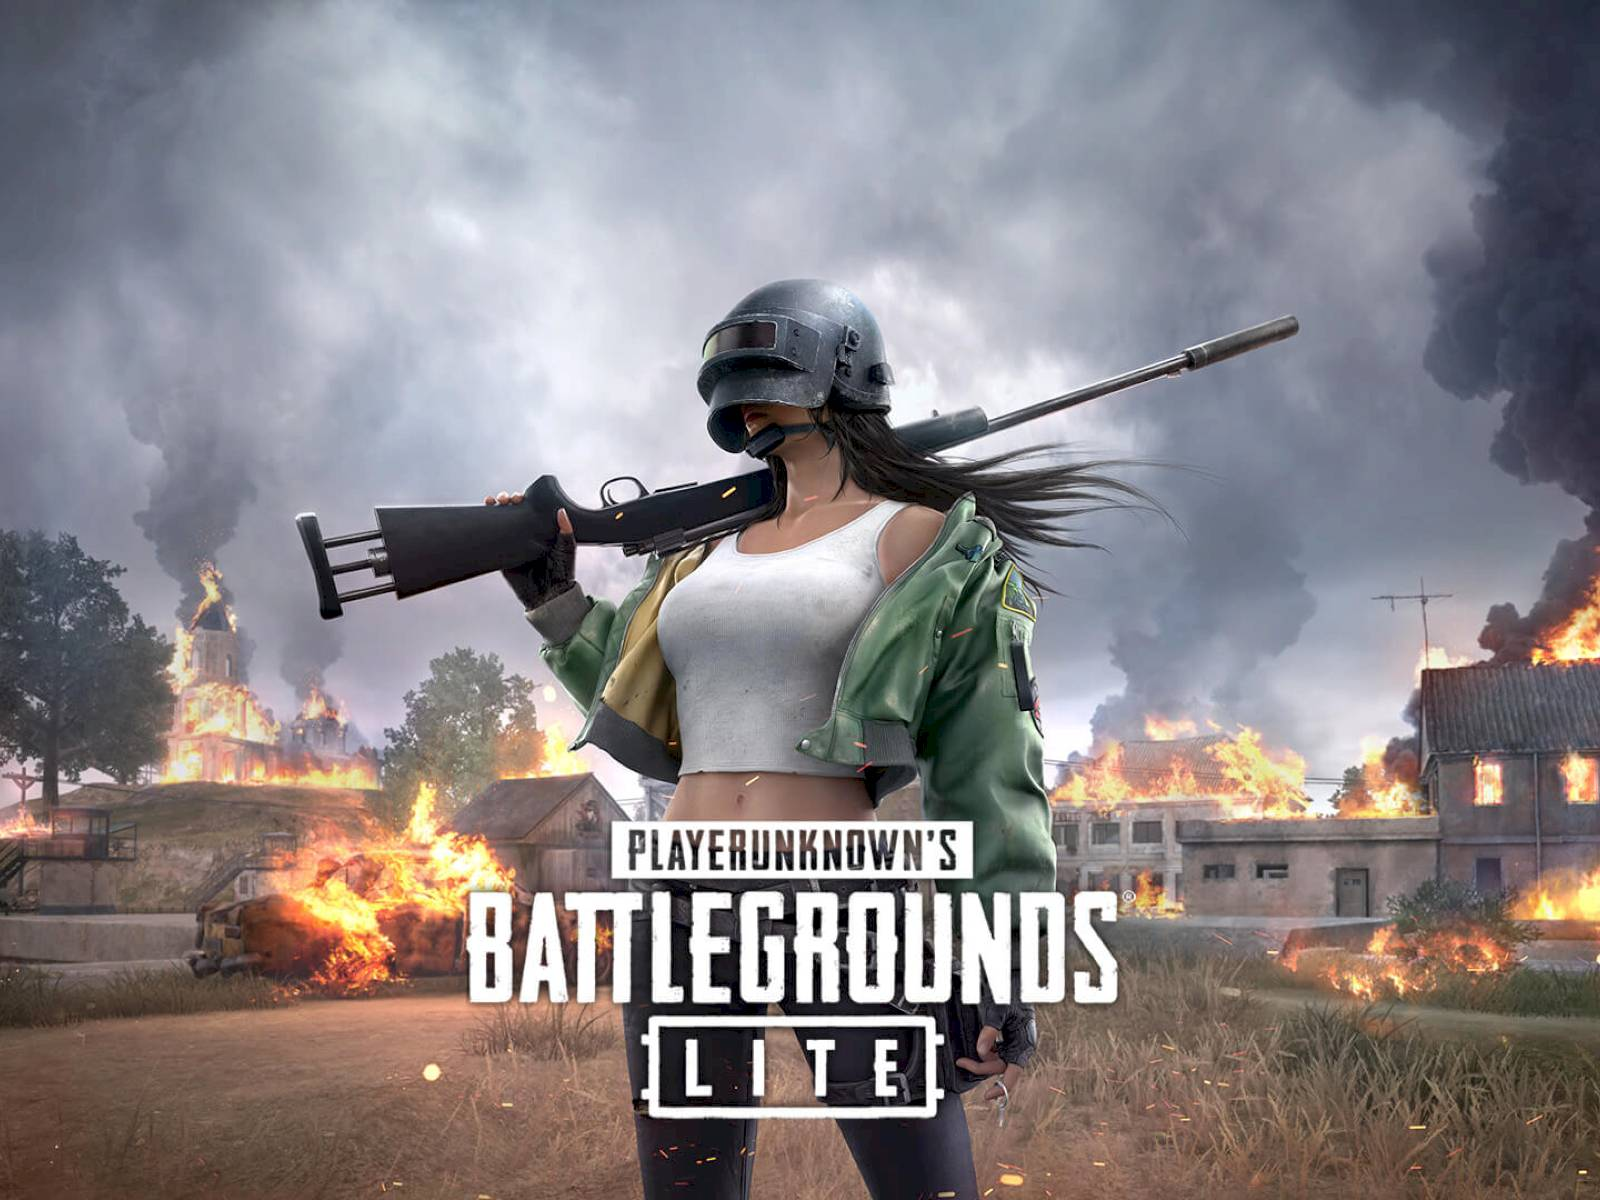 Pubg Lite 5960 + 3576 Battle Coin